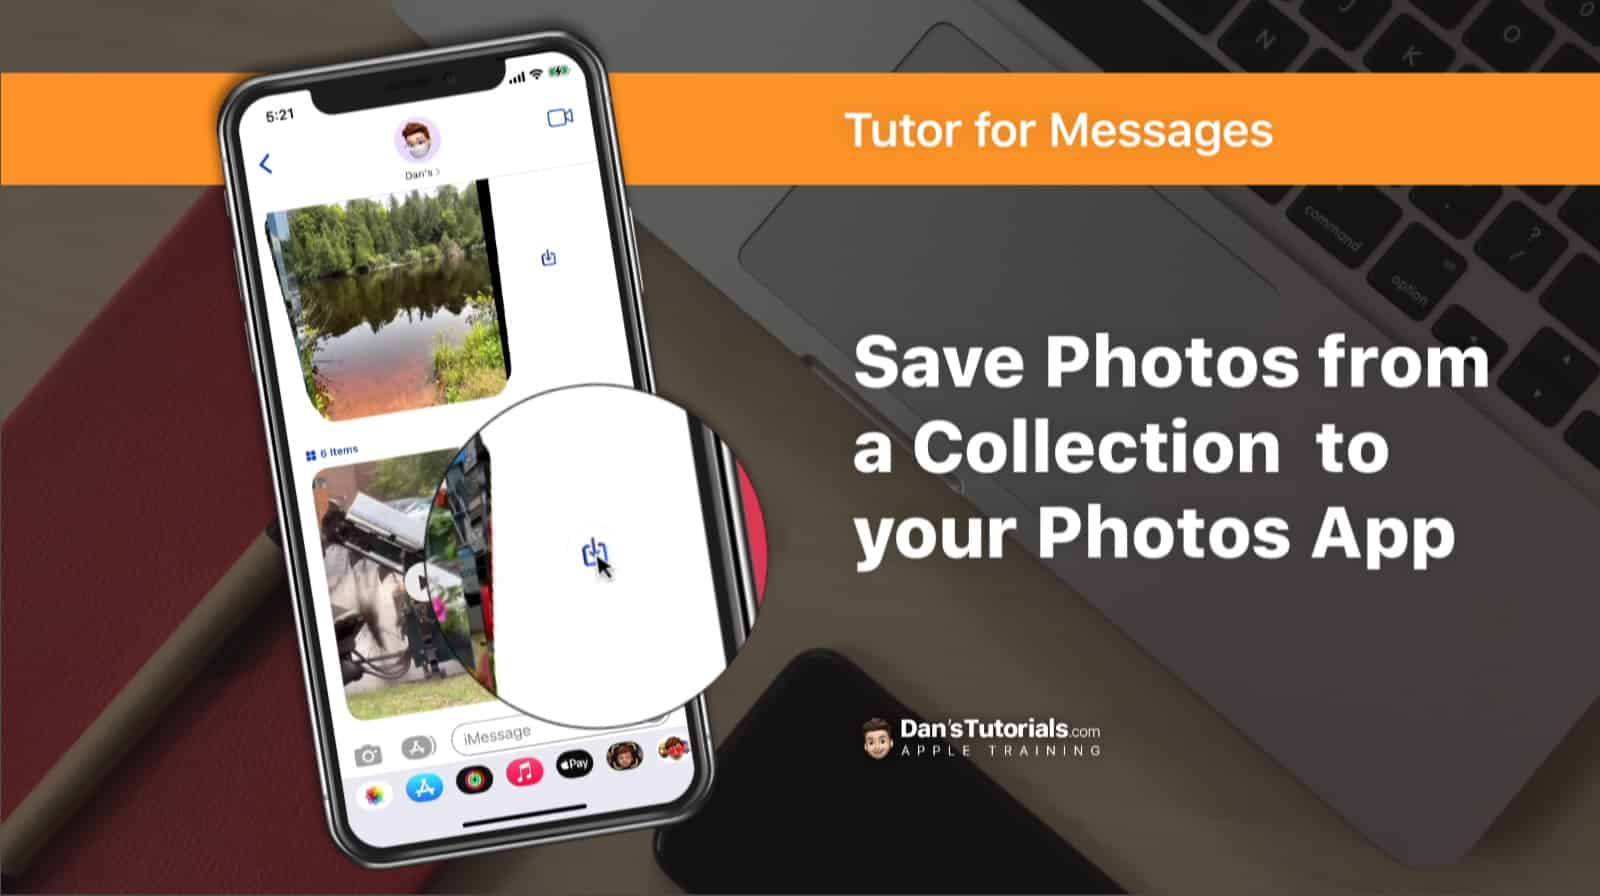 Save Photos from a Collection to your Photos App